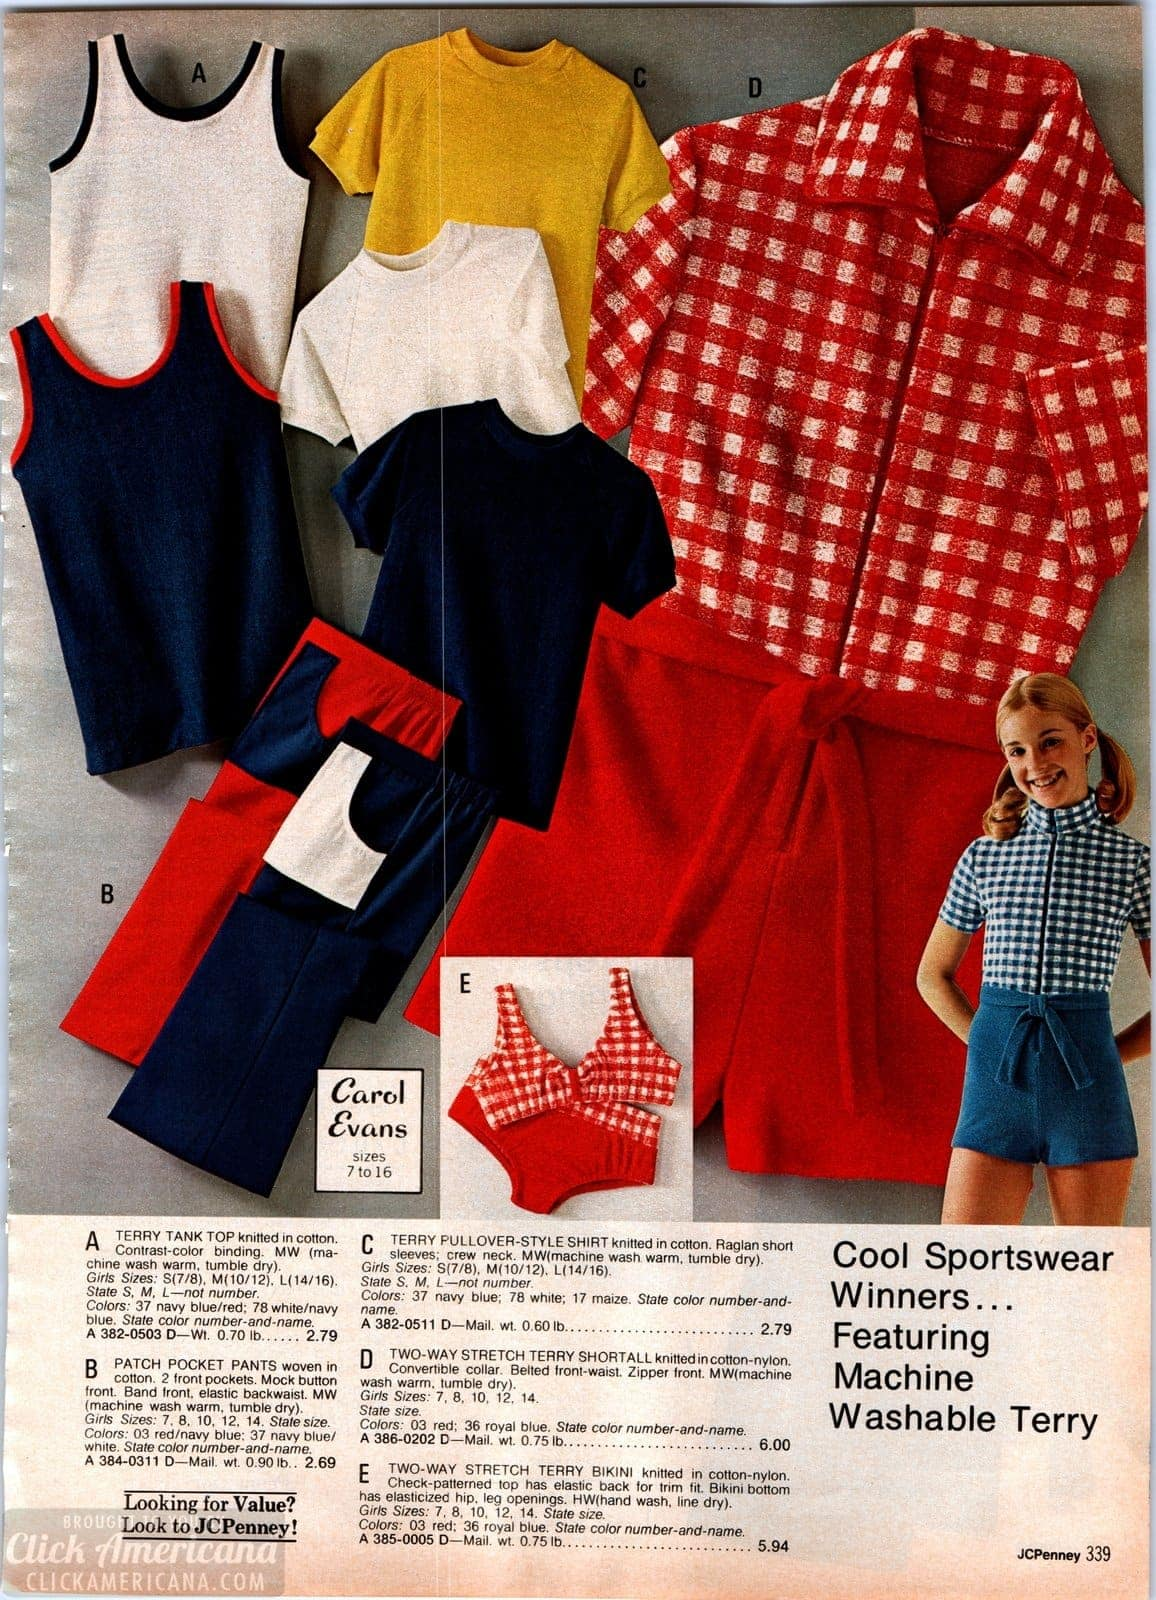 Retro 70s sportswear for girls - tank tops and terry shortalls plus patch pocket jeans